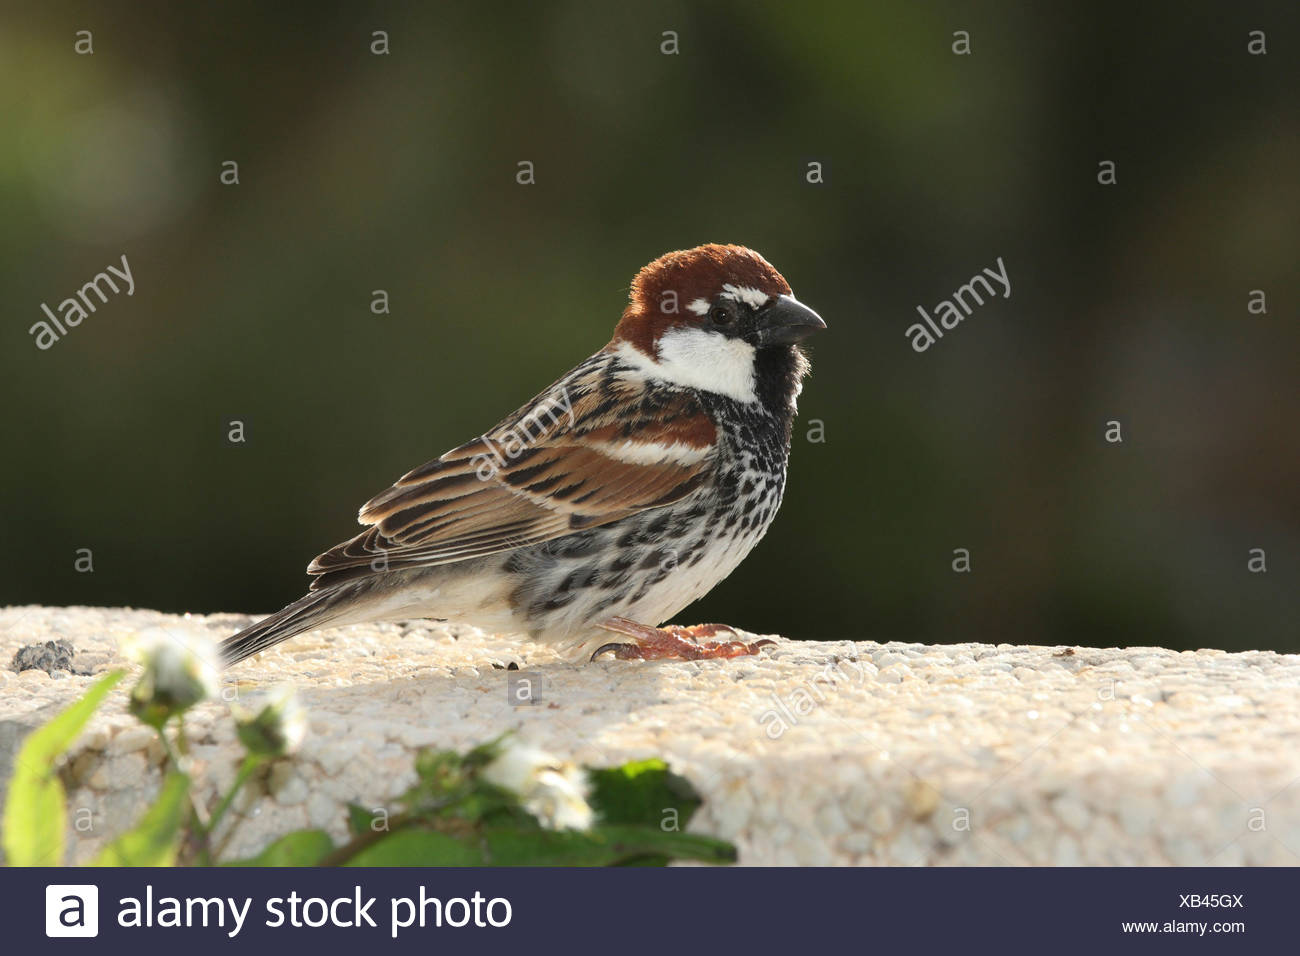 Male female sparrows stock photos male female sparrows stock spanish sparrow passer hispaniolensis sitting on a wall canary islands lanzarote altavistaventures Choice Image